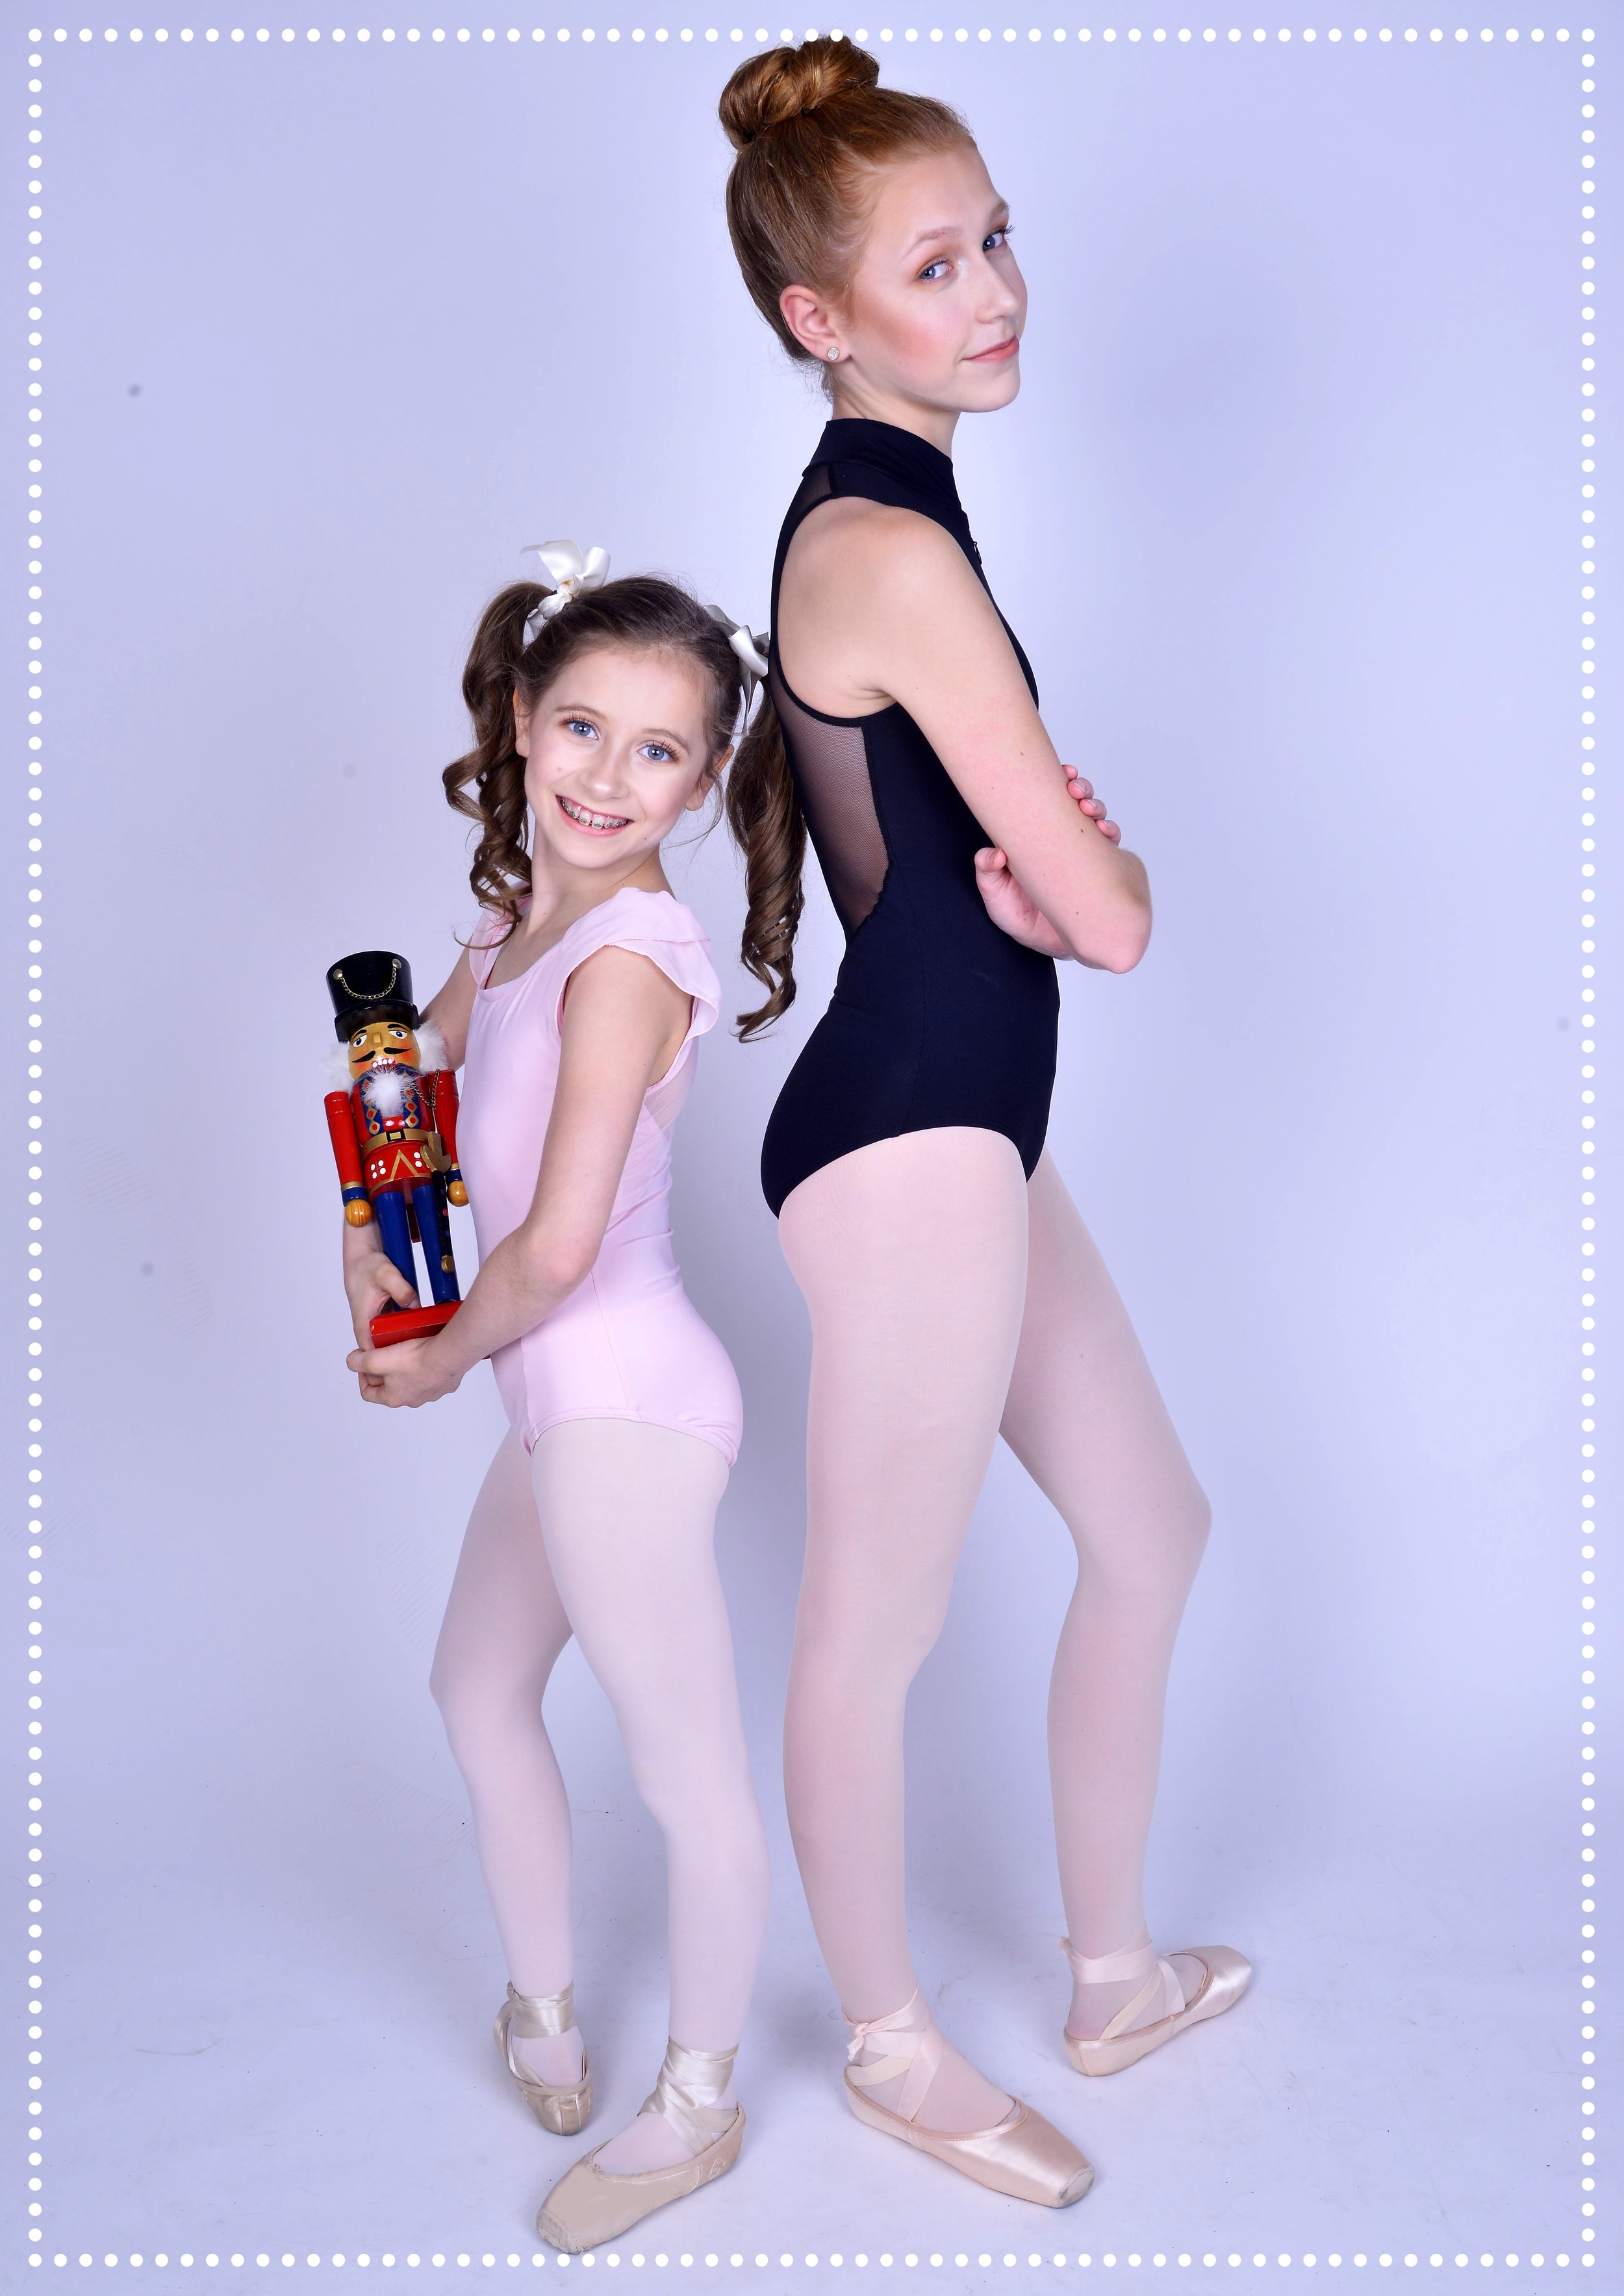 ELLIANA WALMSLEY  as Gracie and  CLARA YOUNG  as Scarlett in the World Premiere of  DANCE DIVAS NUTCRACKER .   (photography by Michael Kushner)